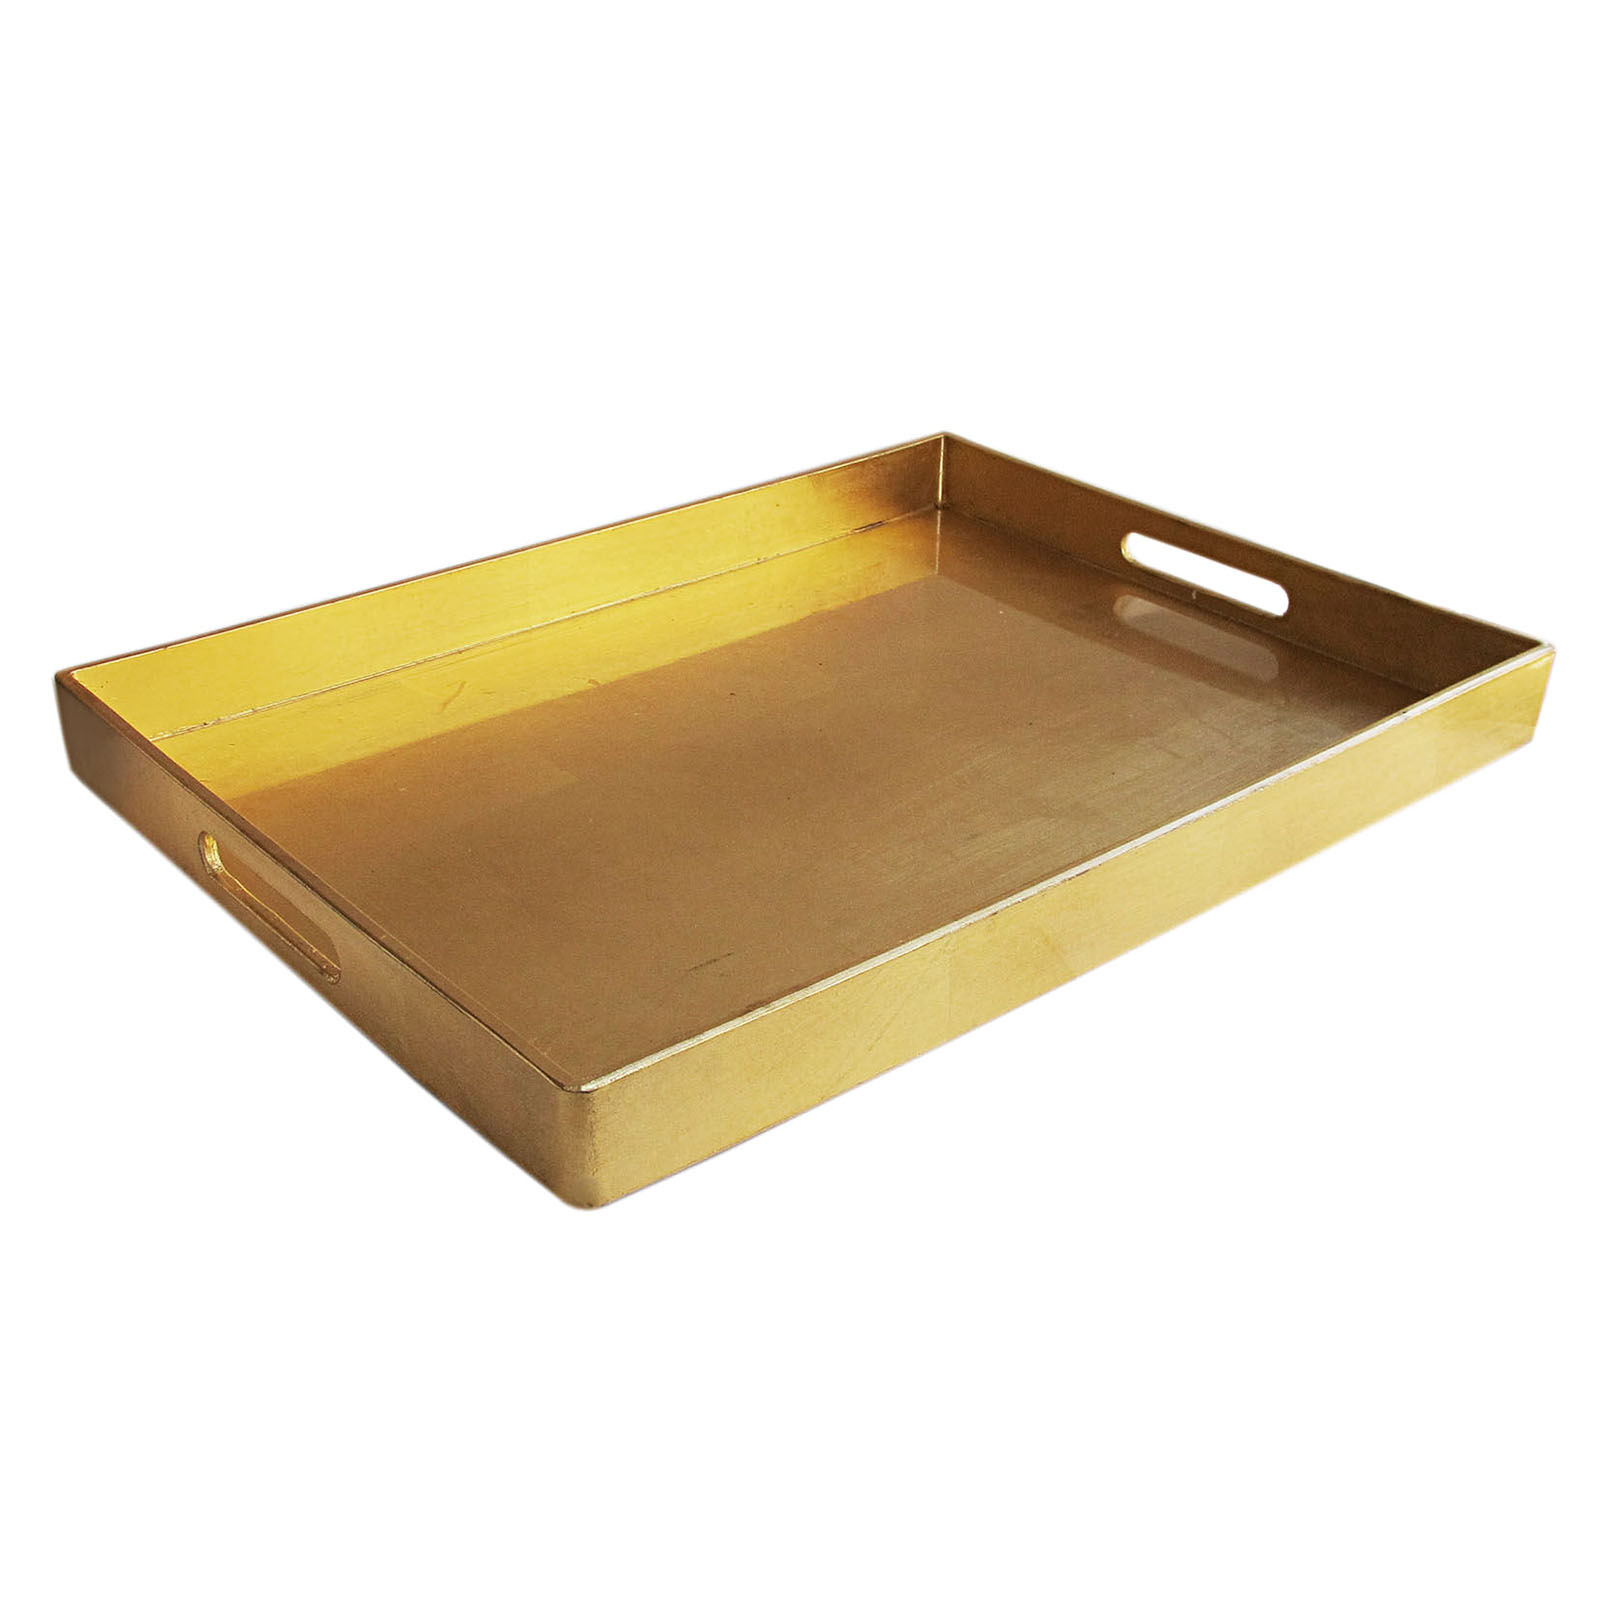 Gold Serving Tray Gold Metallic Decorative Serving Tray At Home